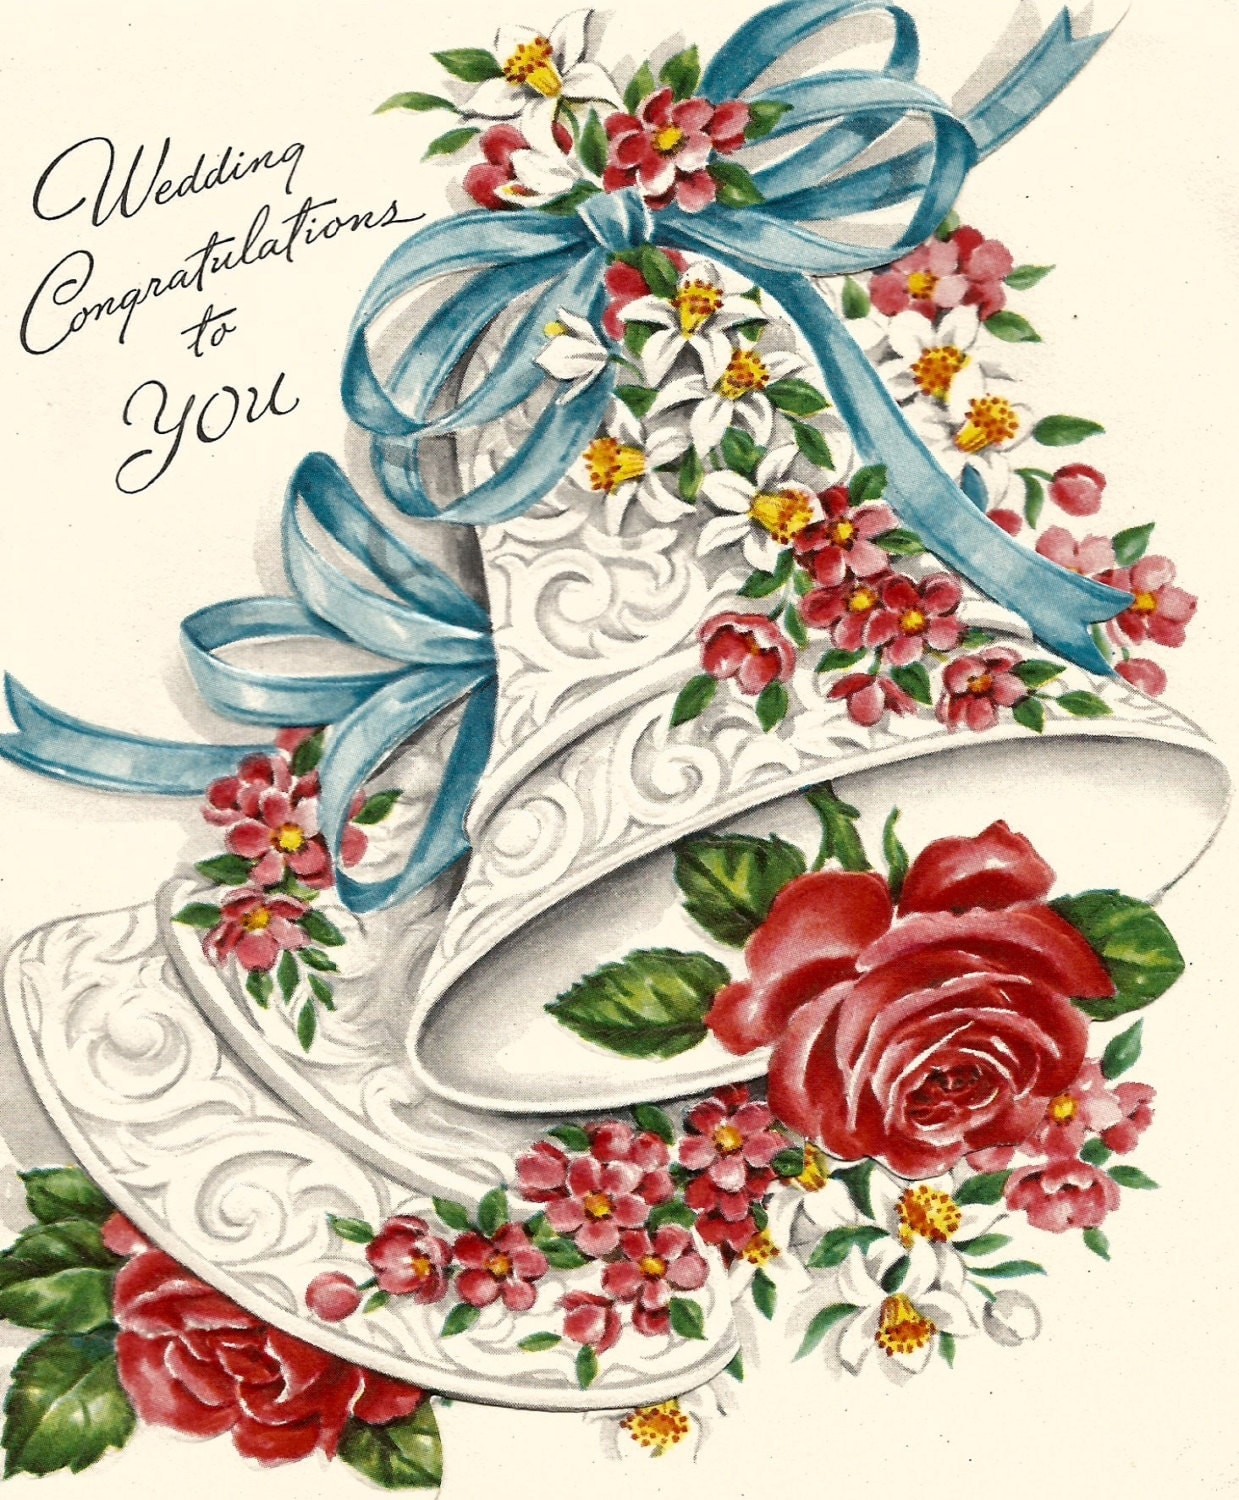 Wedding Wishes Cards: Vintage Wedding Congratulations Greeting Card Bel Flowers